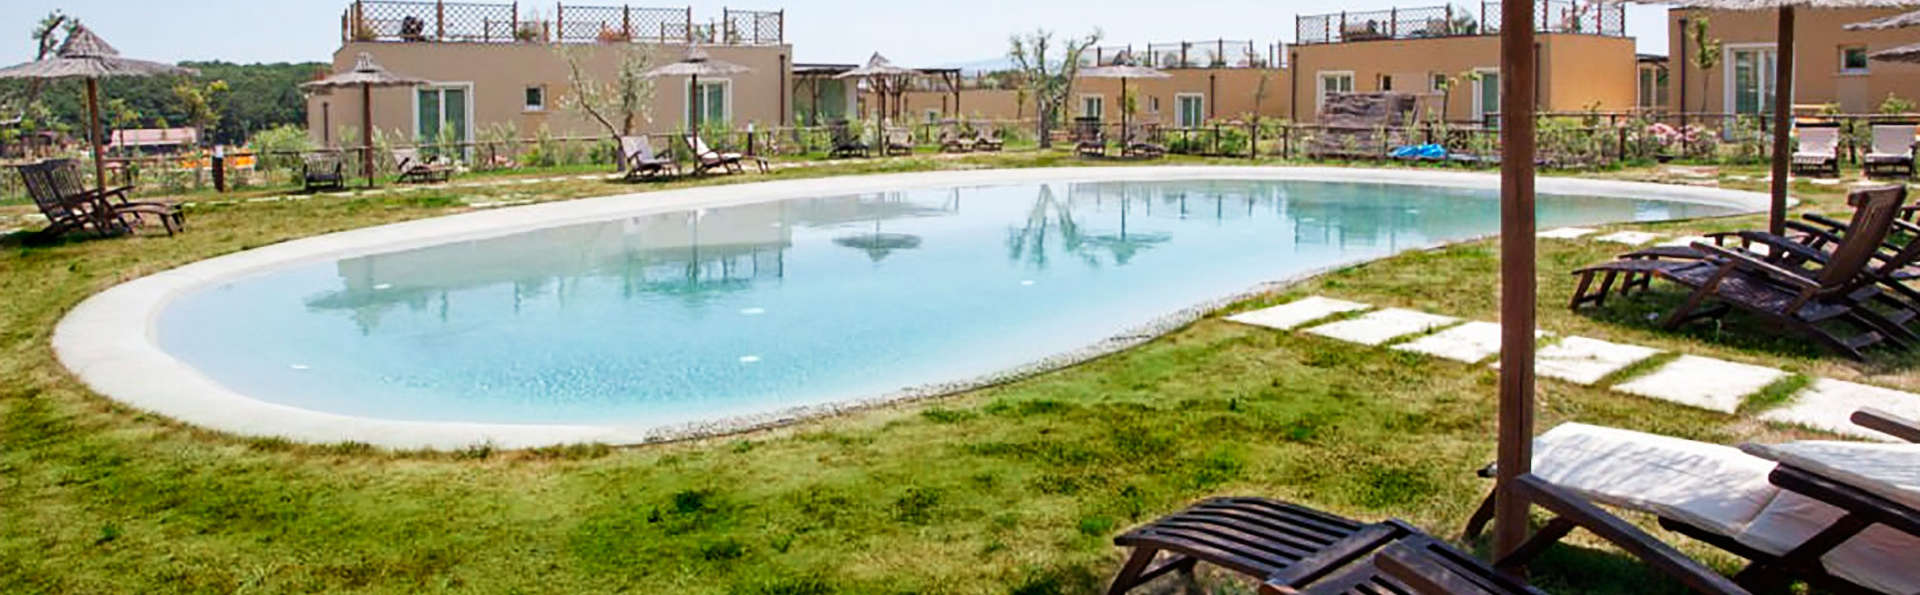 Toscana Biovillage - edit_pool1.jpg